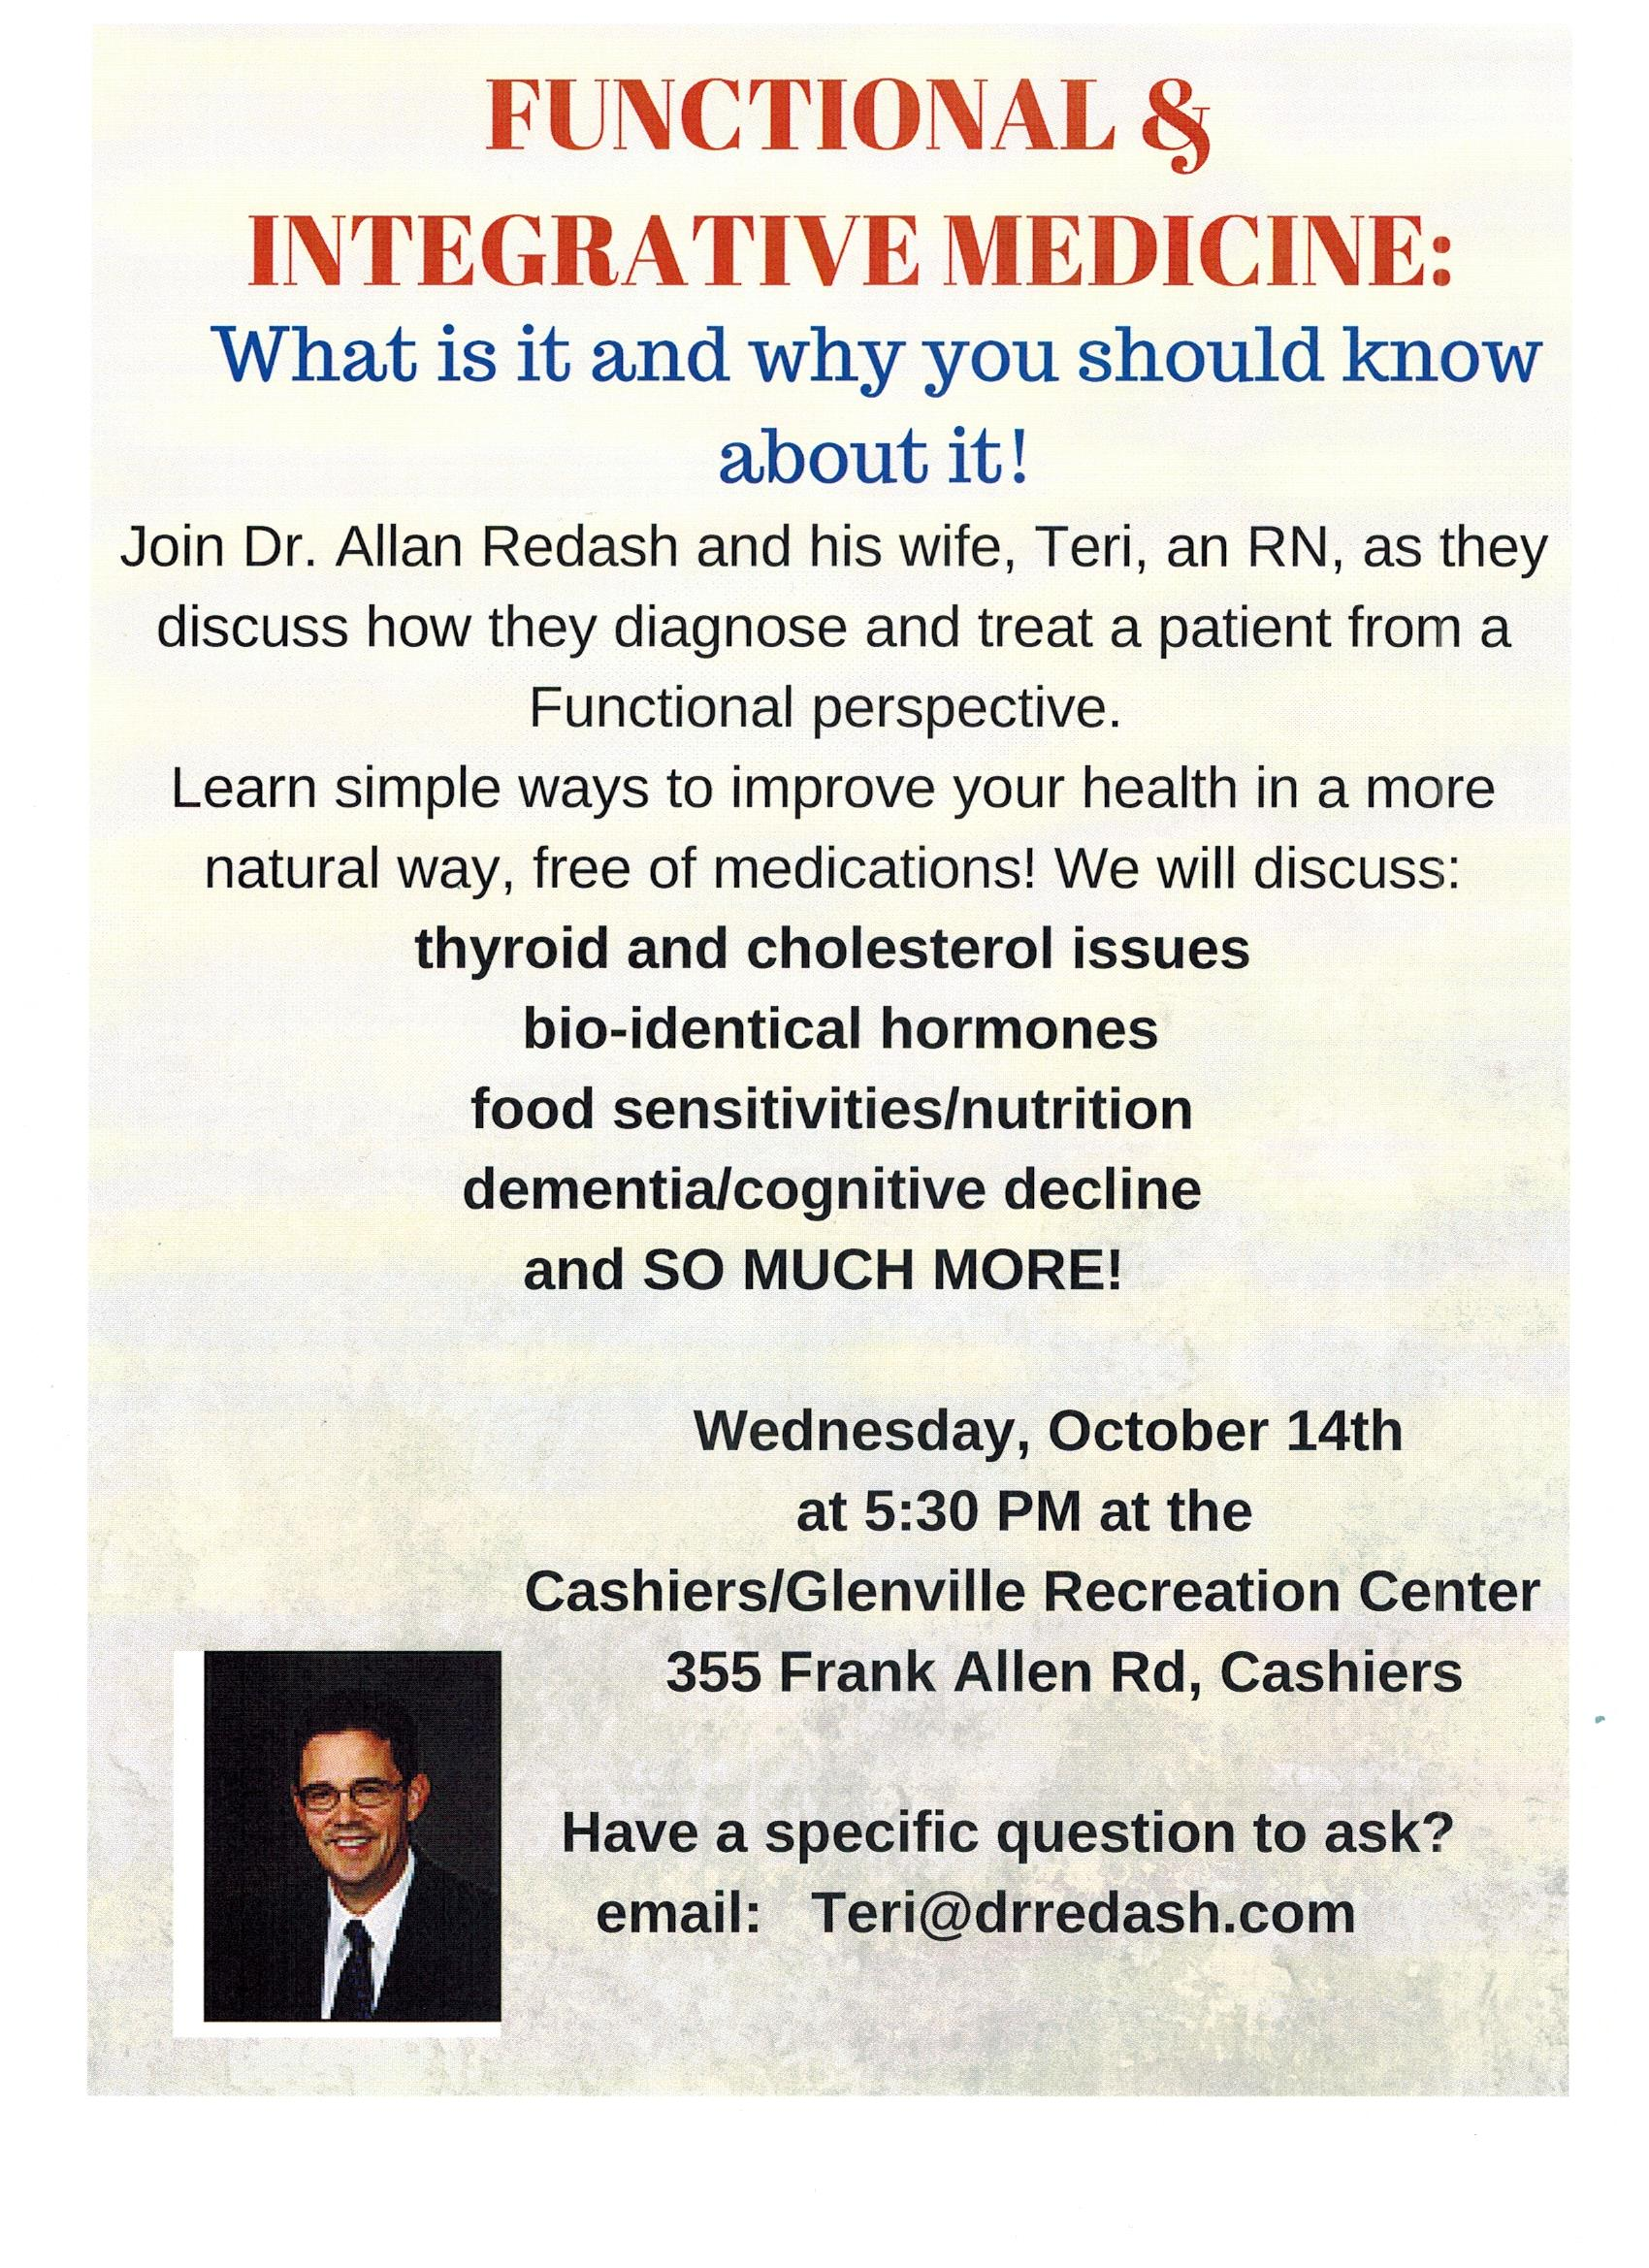 Free Lecture on Integrative & Functional Medicine, 10/14/15